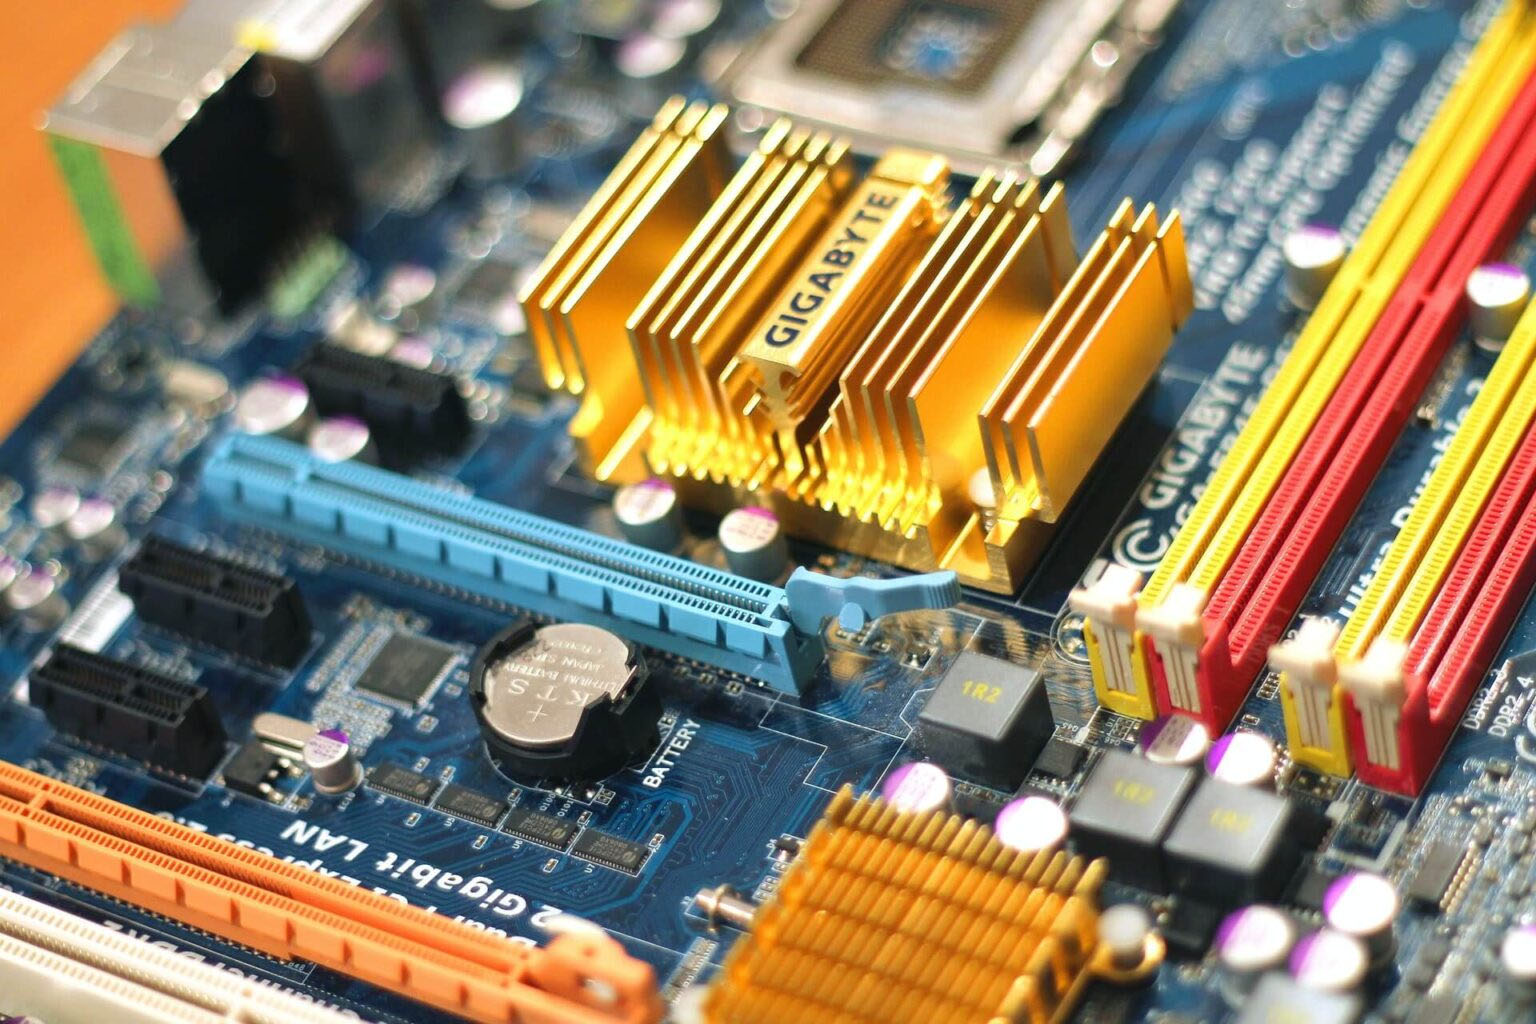 11 Best Motherboard for Hackintosh: Buyer's Guide